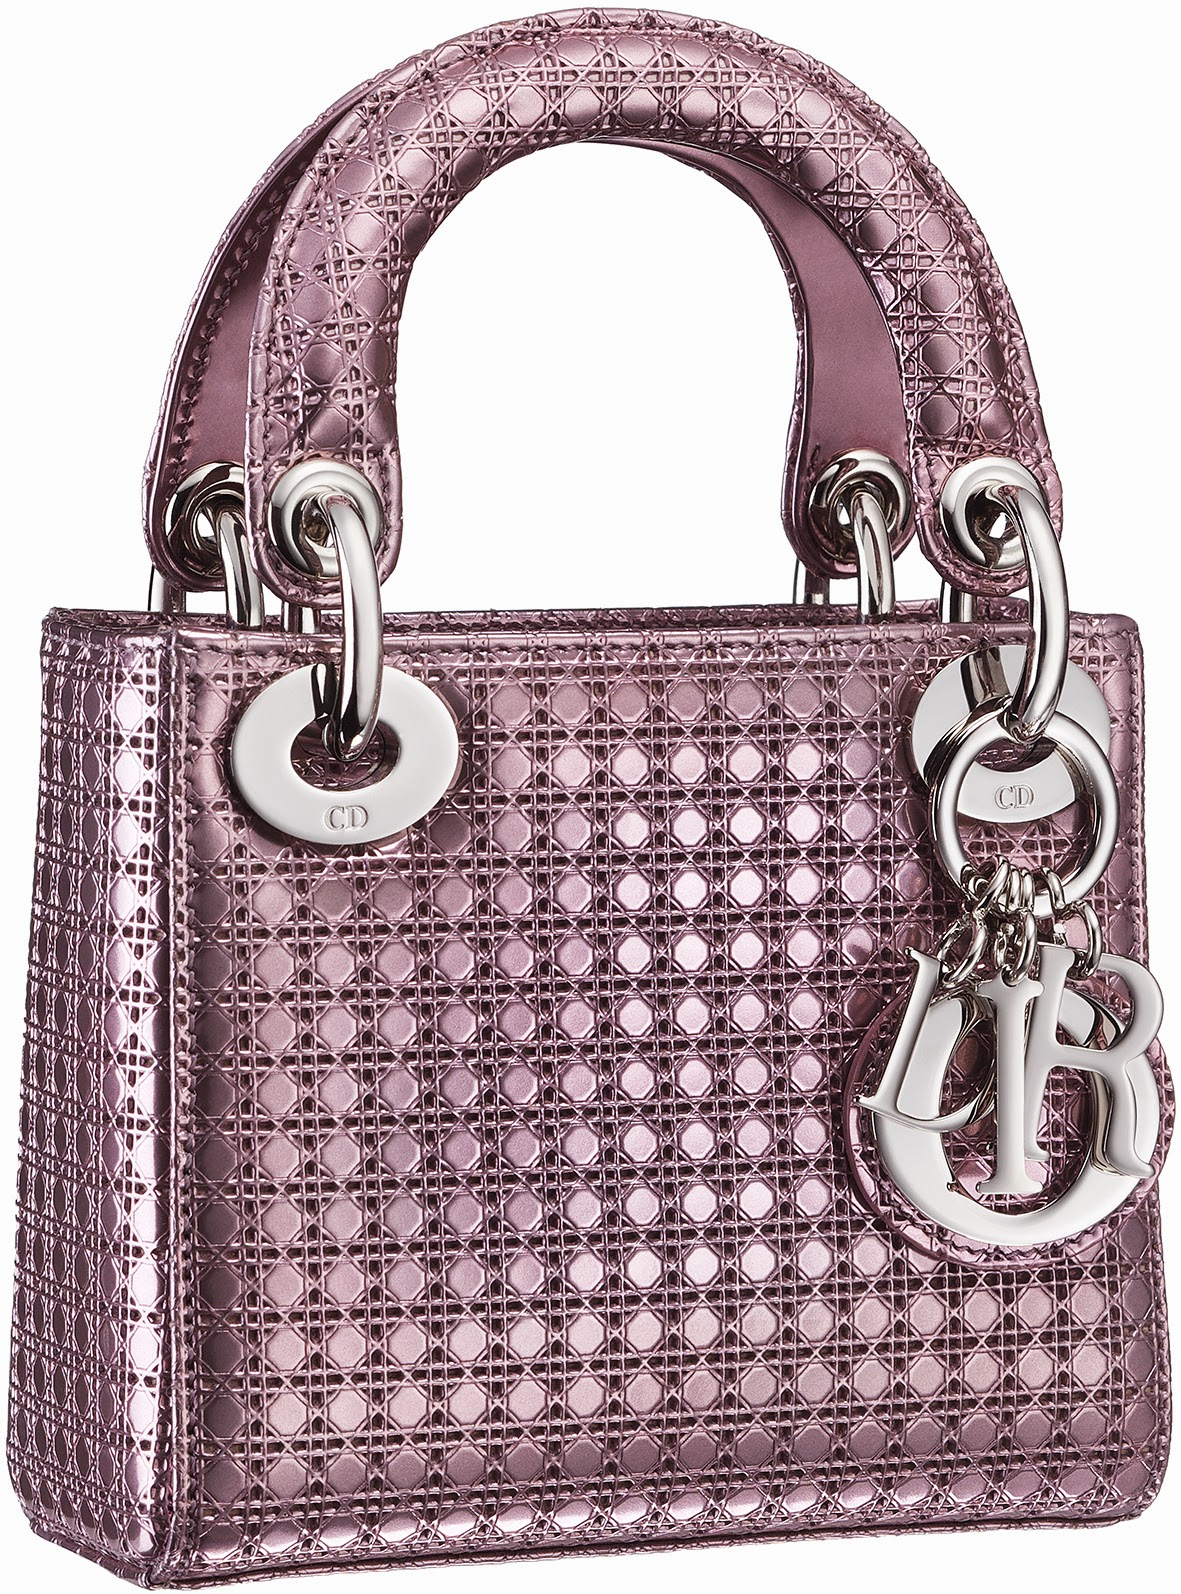 BagAddicts Anonymous  Dior s Micro Lady Dior For Pre Fall 2015 27b820b5d2809